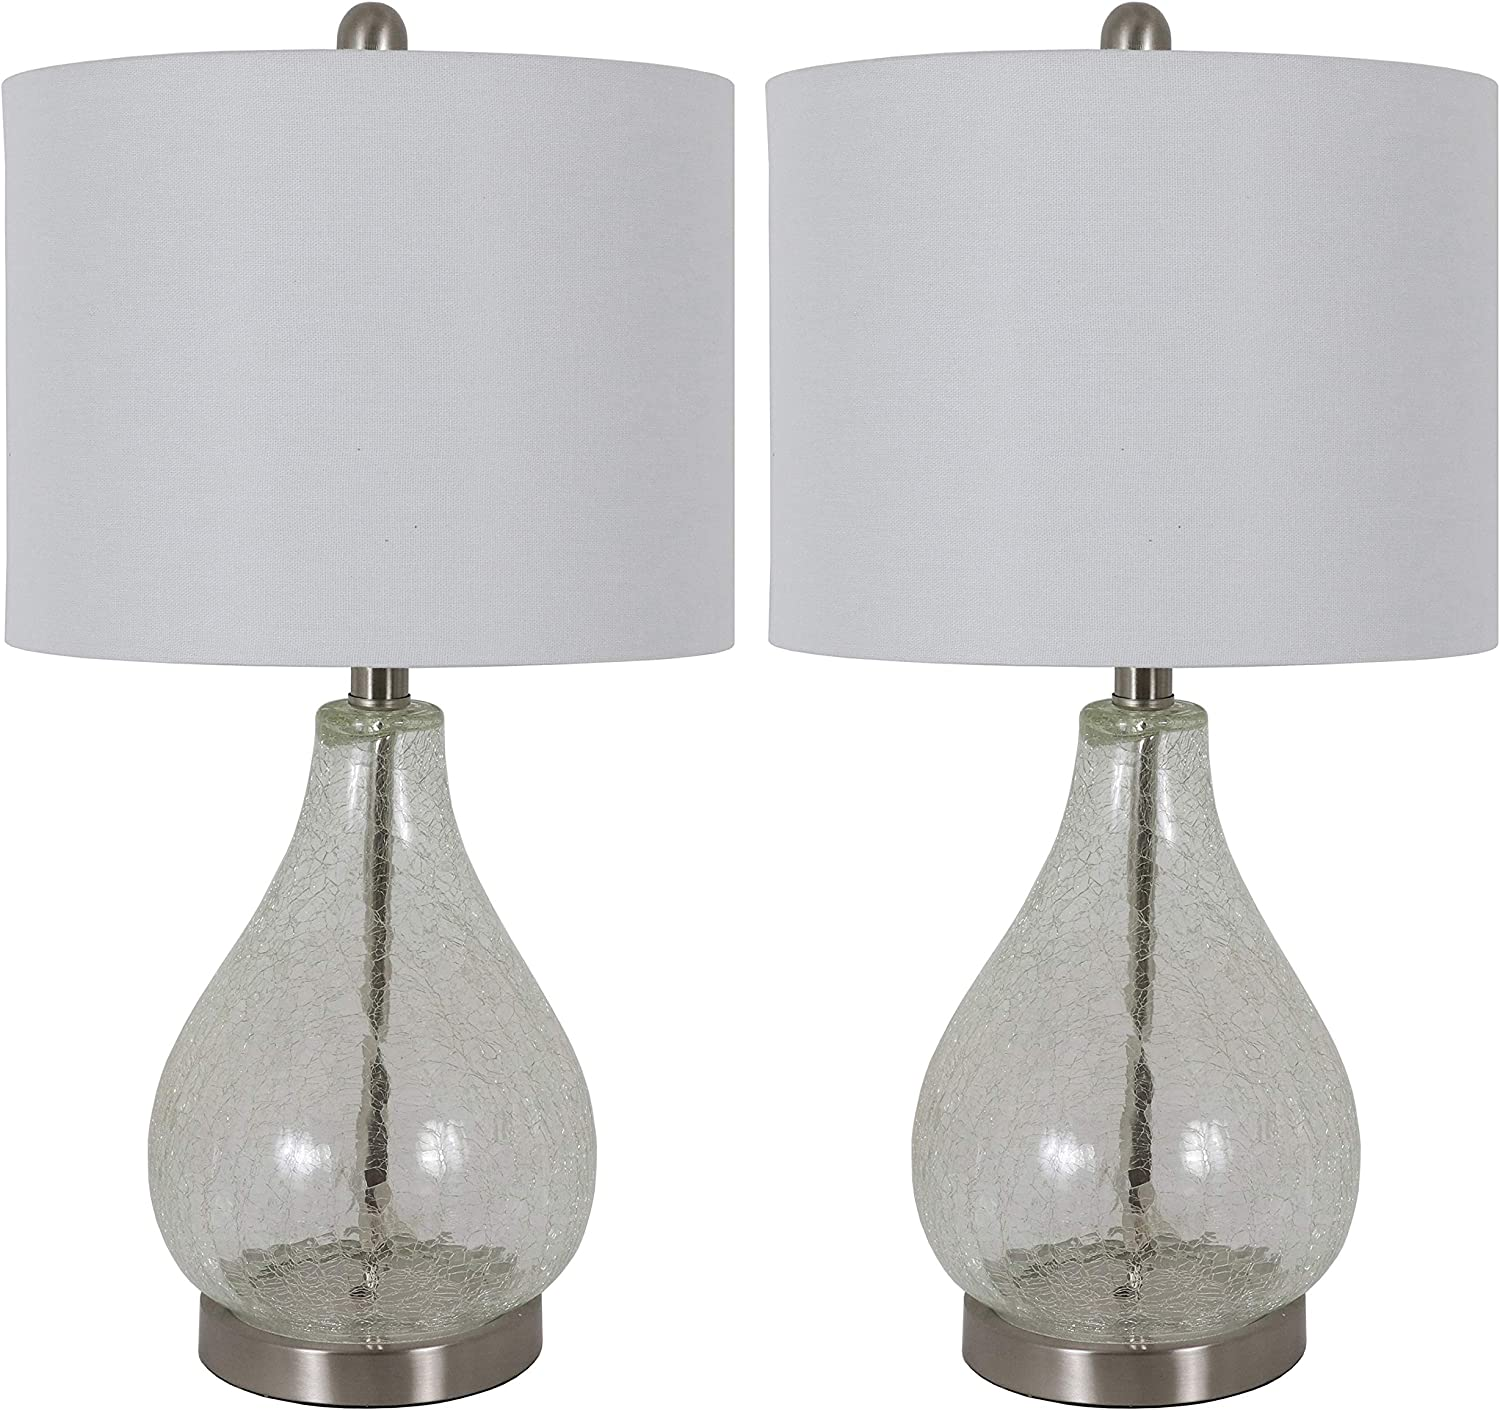 Decor Therapy MP1096 Table Lamp Set of 2, Clear